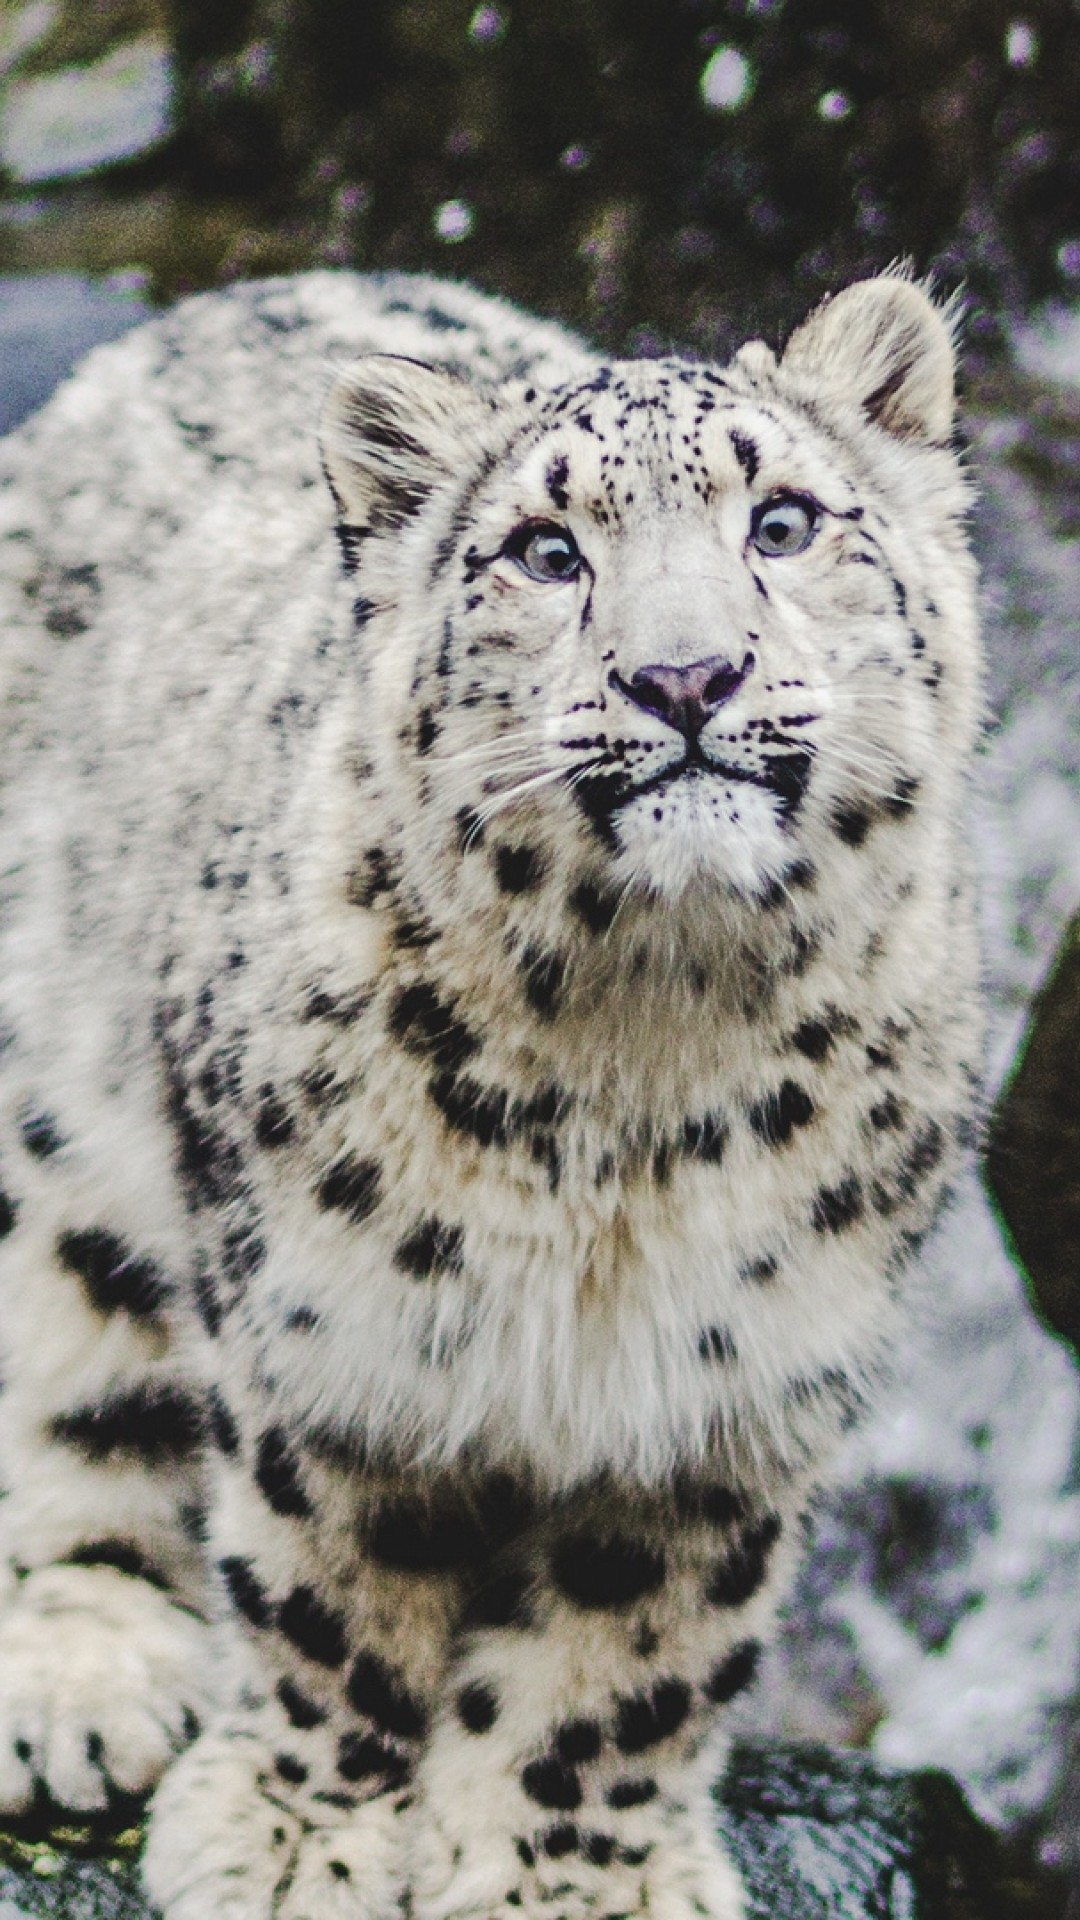 Snow Leopard Smiling Hd Wallpaper Iphone 6 6s Plus Hd